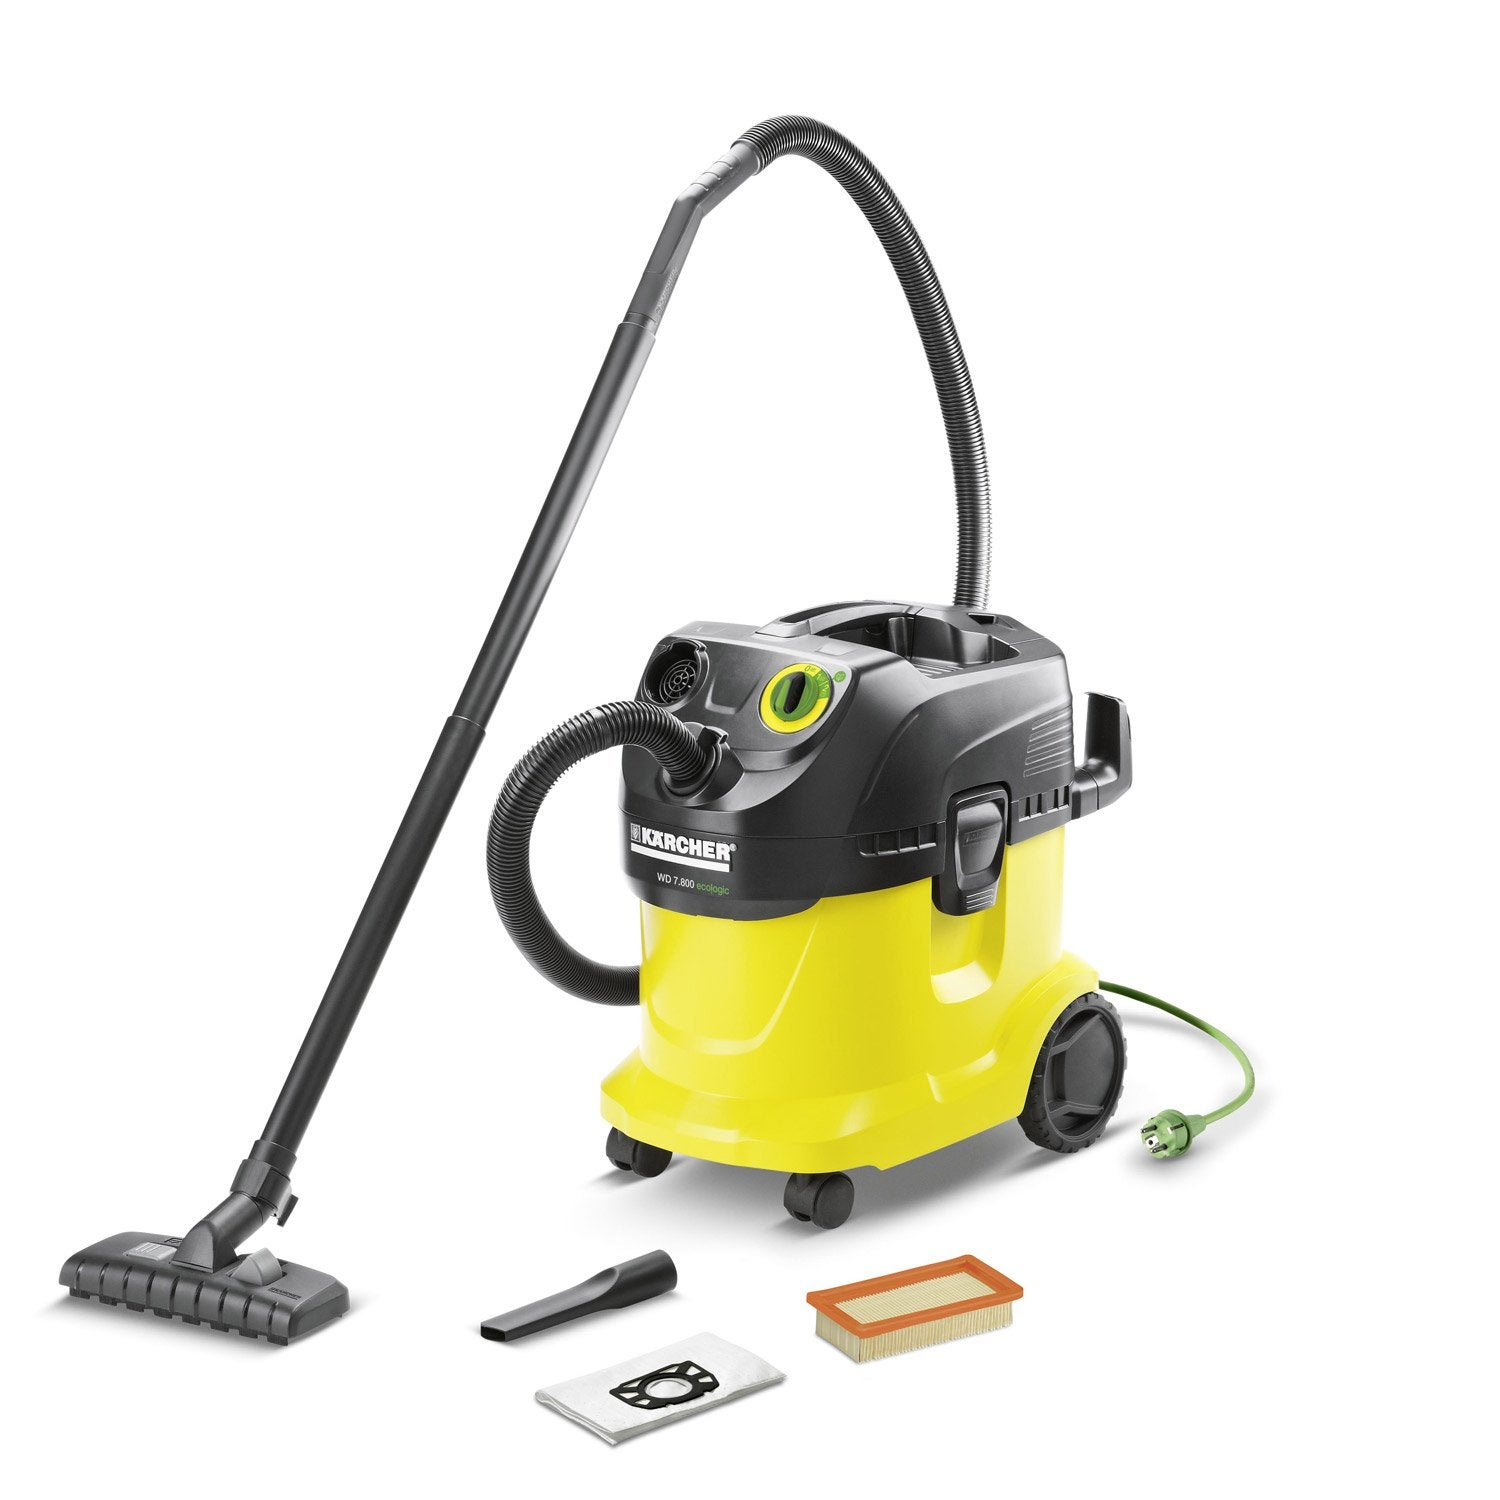 aspirateur industriel eau et poussi res karcher wd7800 eco 21 kpa 25 l leroy merlin. Black Bedroom Furniture Sets. Home Design Ideas